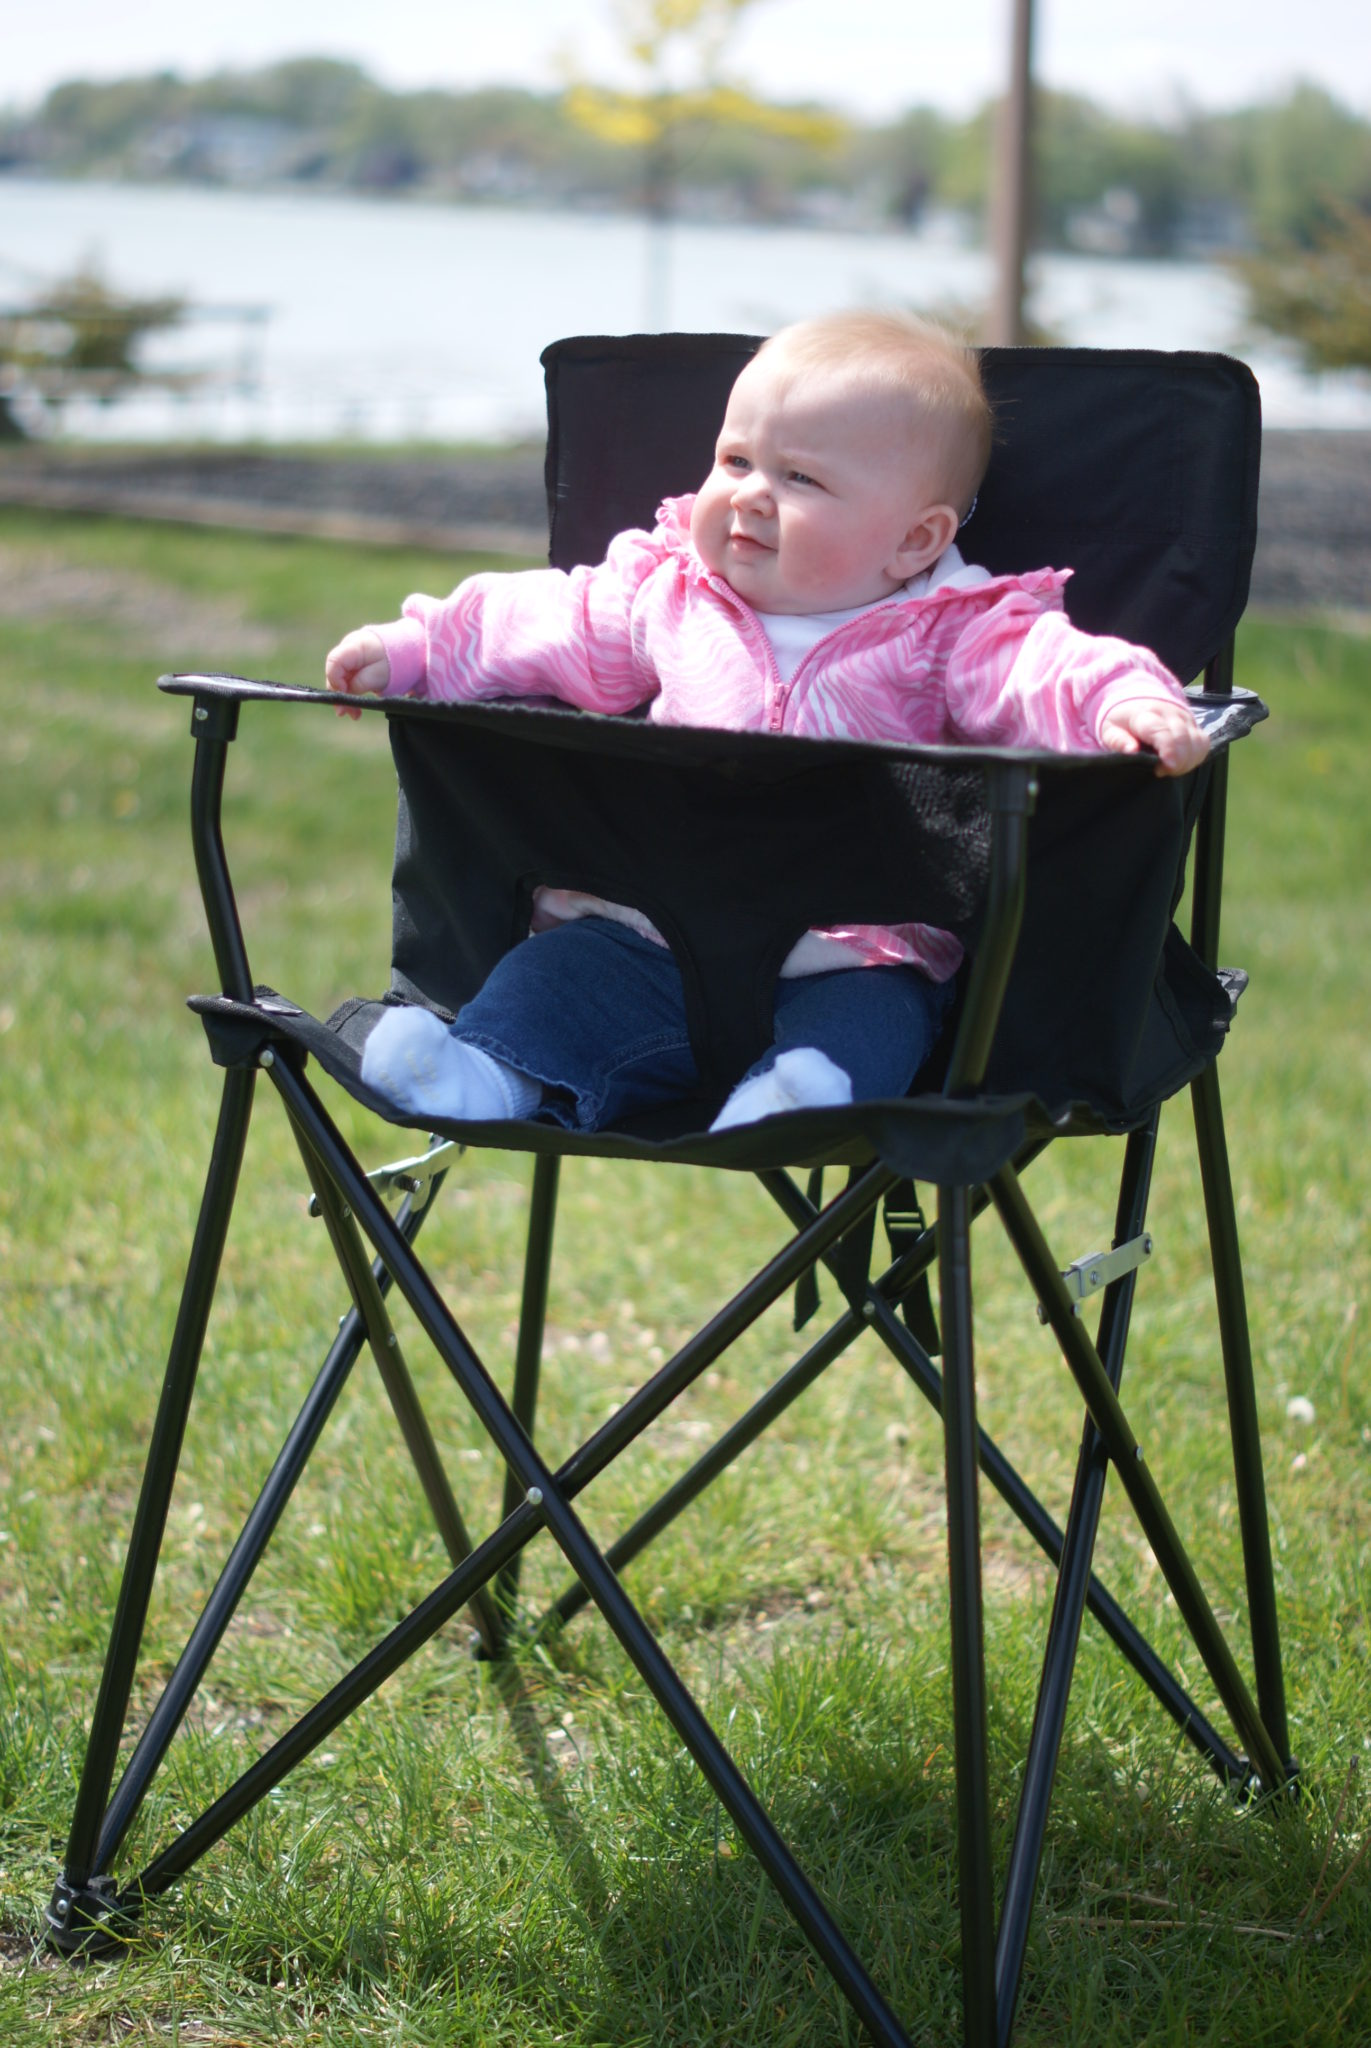 Terrific Ciao Baby Chair The Unforgettable Baby Shower T Ciao Ocoug Best Dining Table And Chair Ideas Images Ocougorg